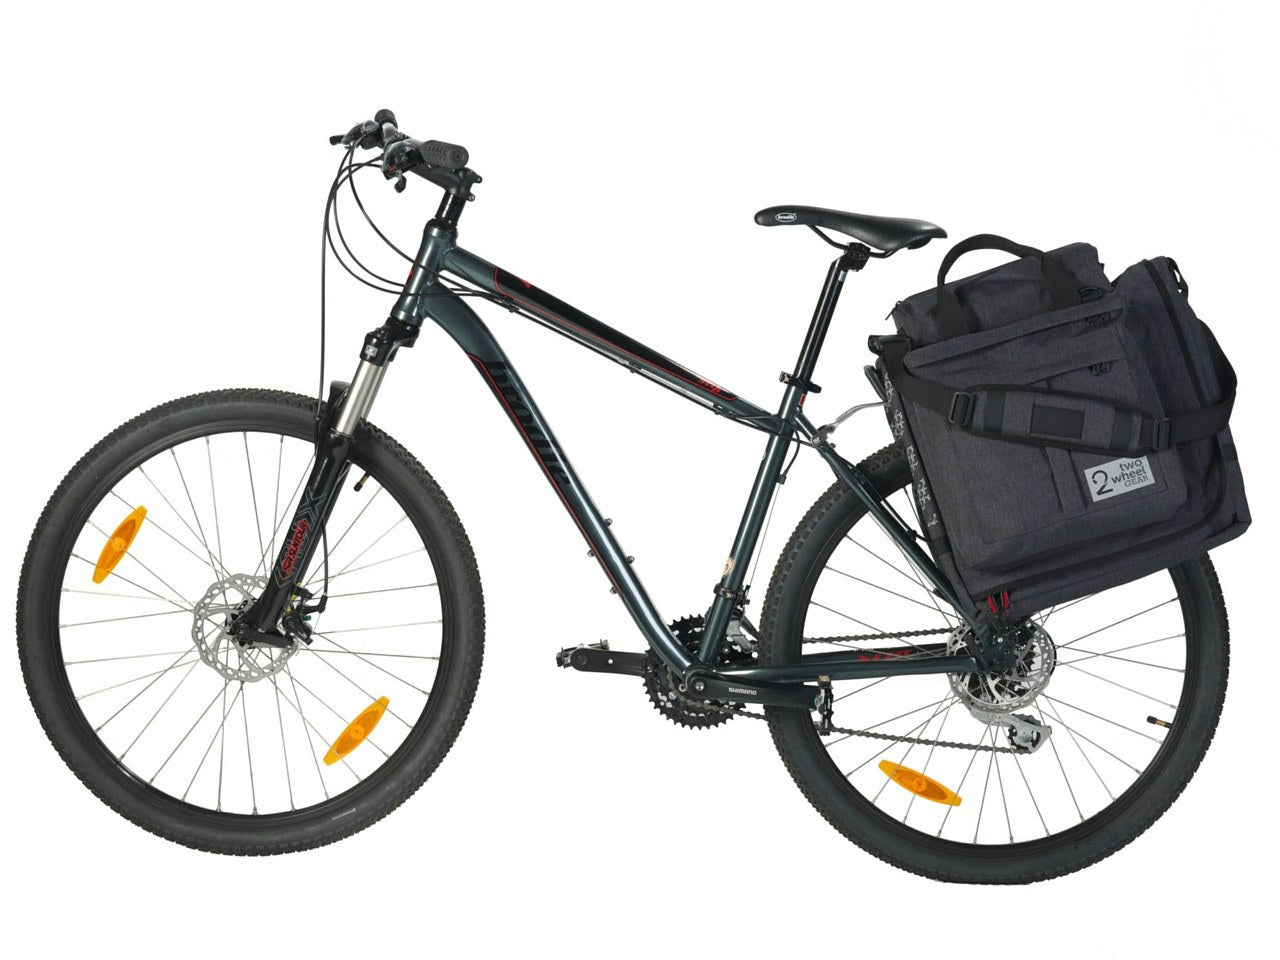 Classic 2.0 Garment Pannier in graphite grey mounted on bike rack